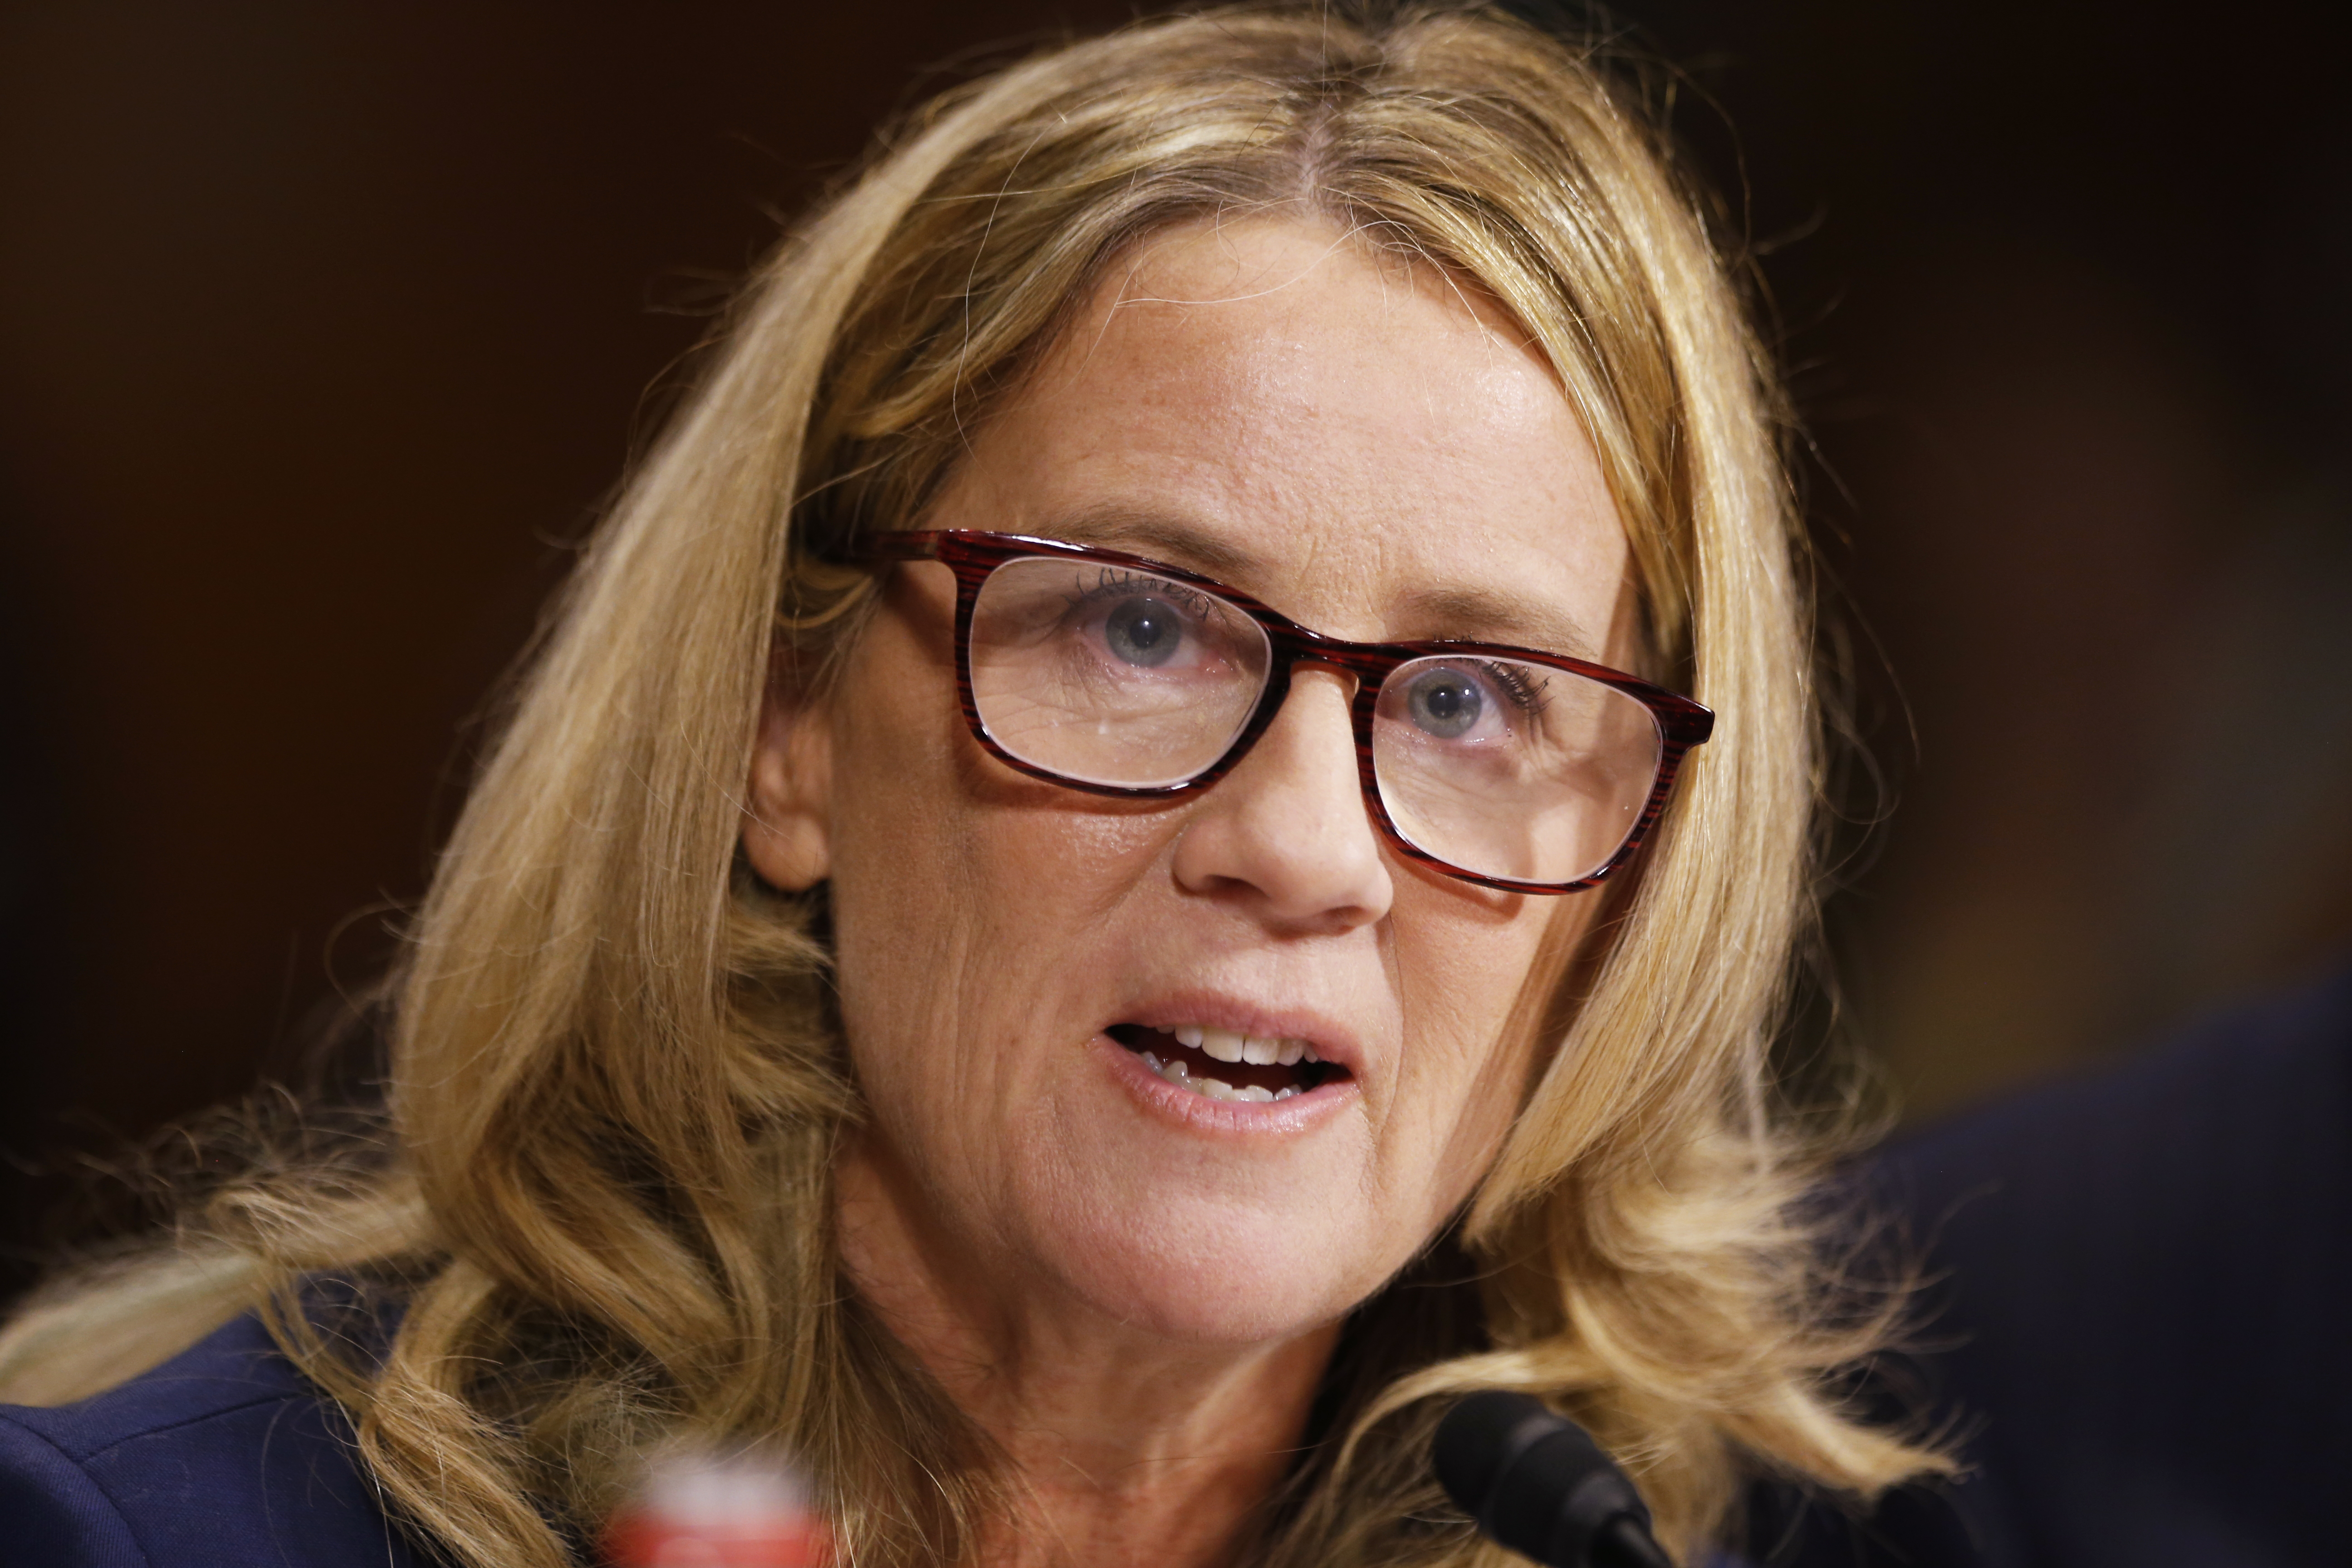 Star Wars voice actress mocks Christine Blasey Ford's voice during Kavanaugh testimony